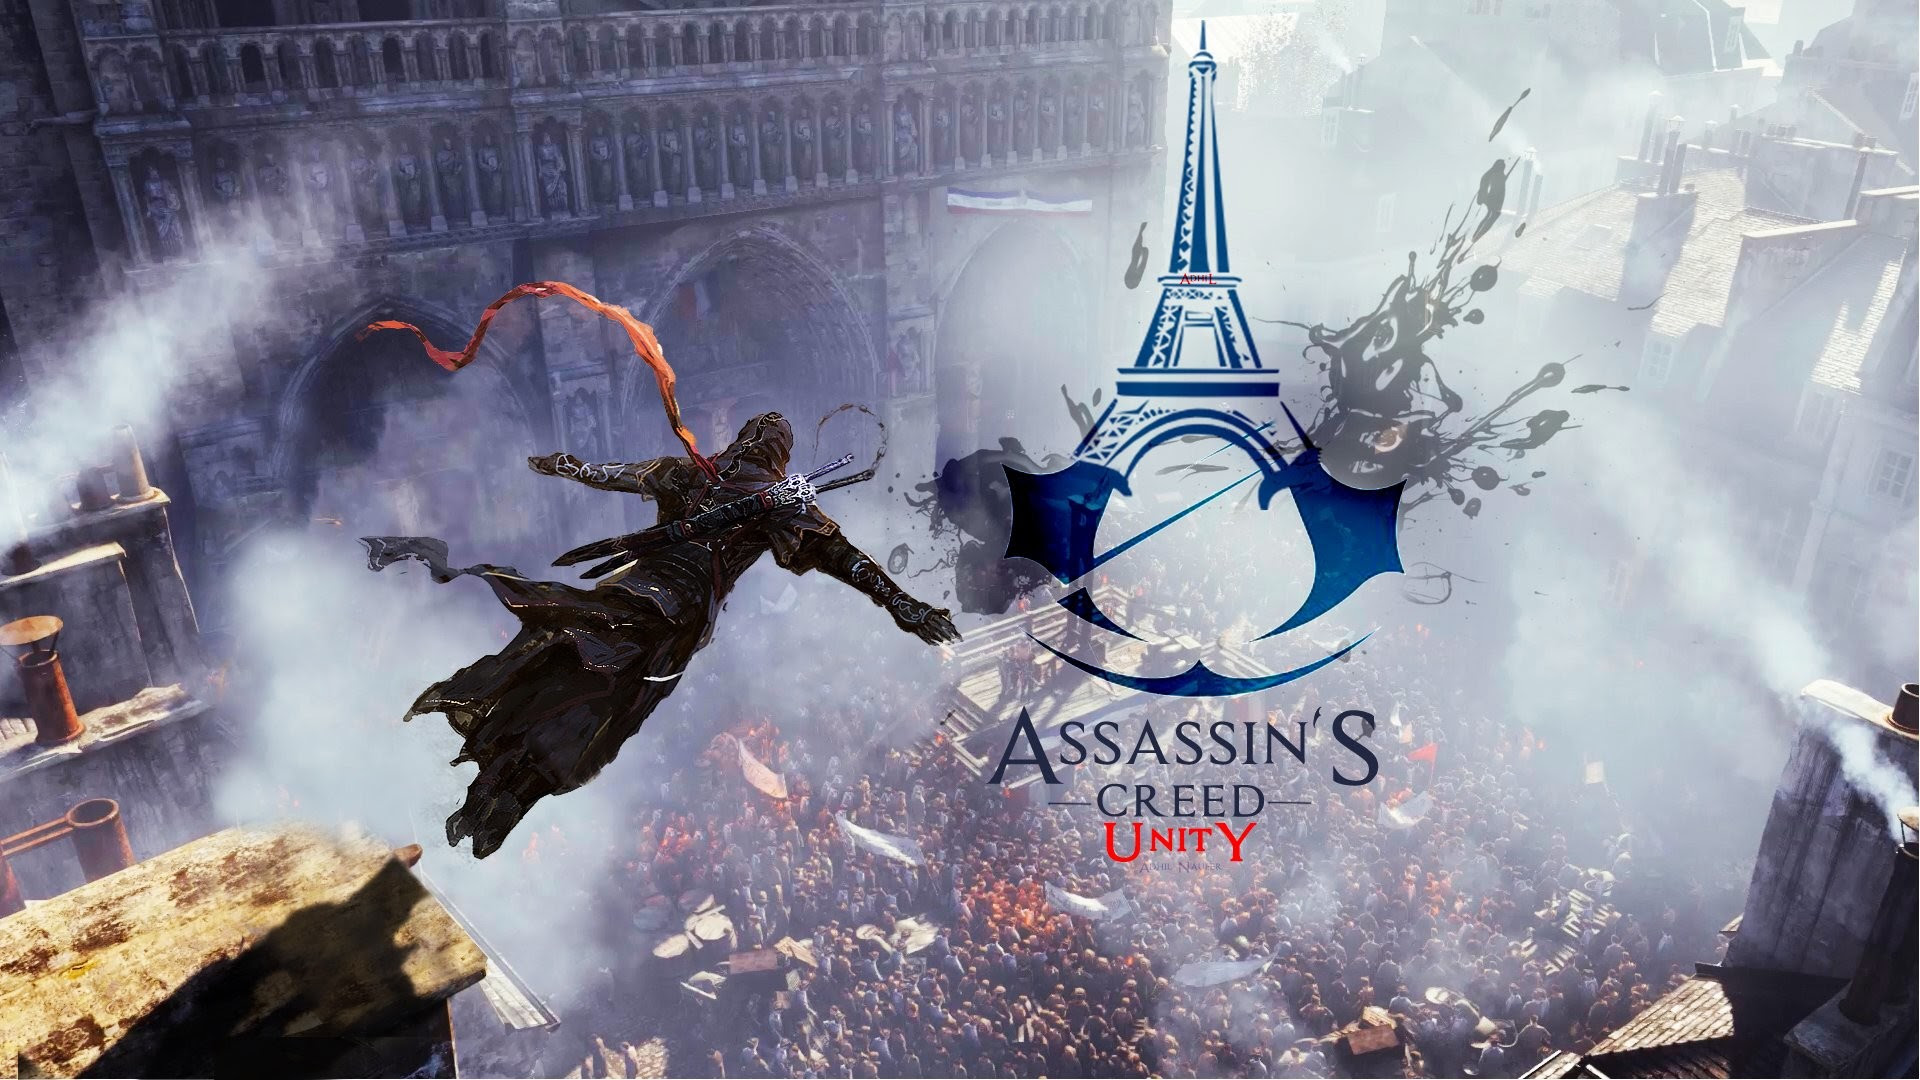 Assassins Creed Unity Wallpapers 83 Images Images, Photos, Reviews